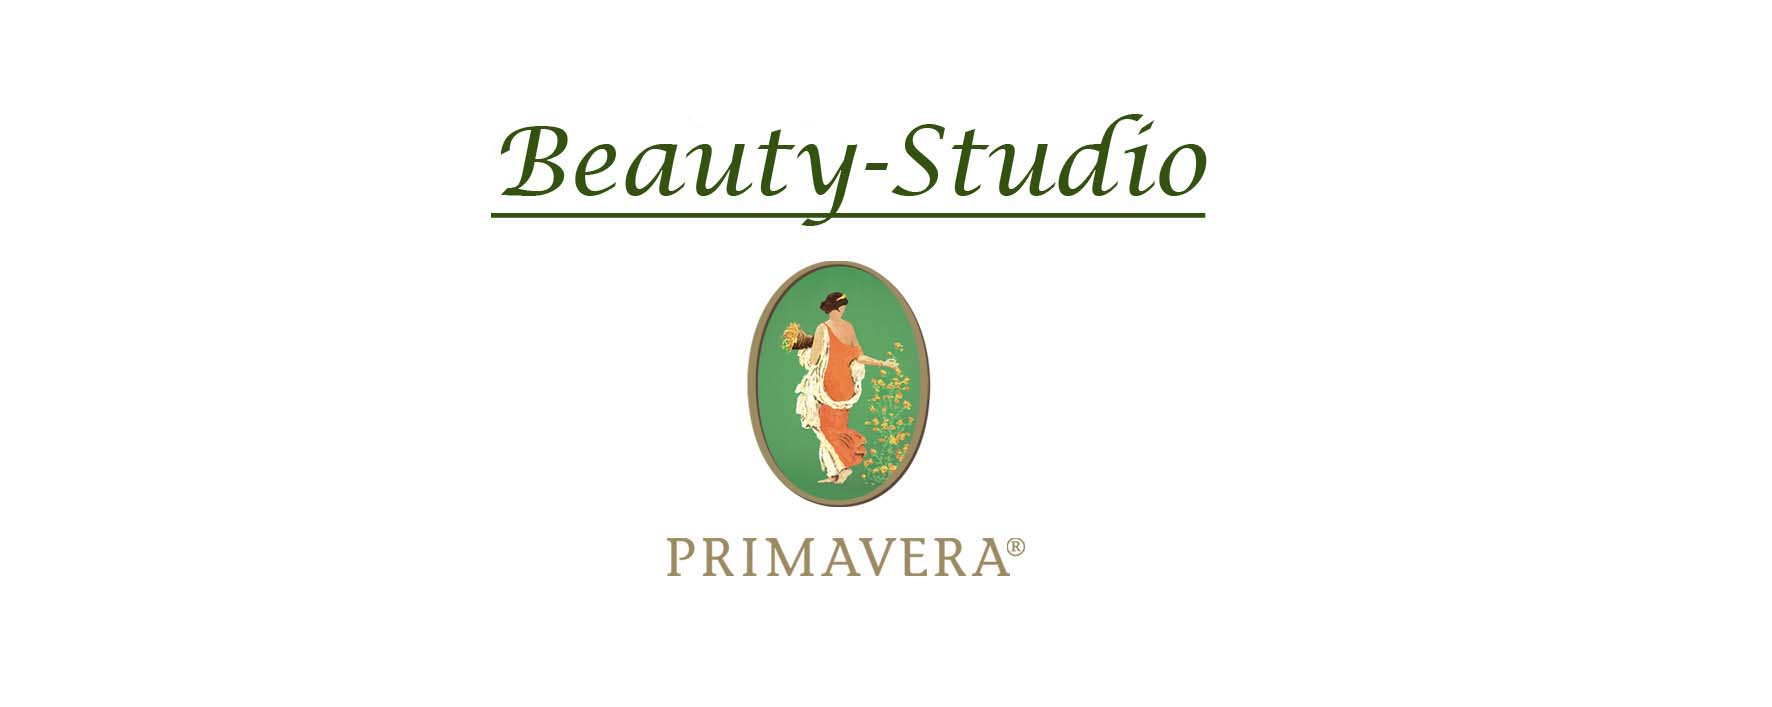 Beautystudio Primavera